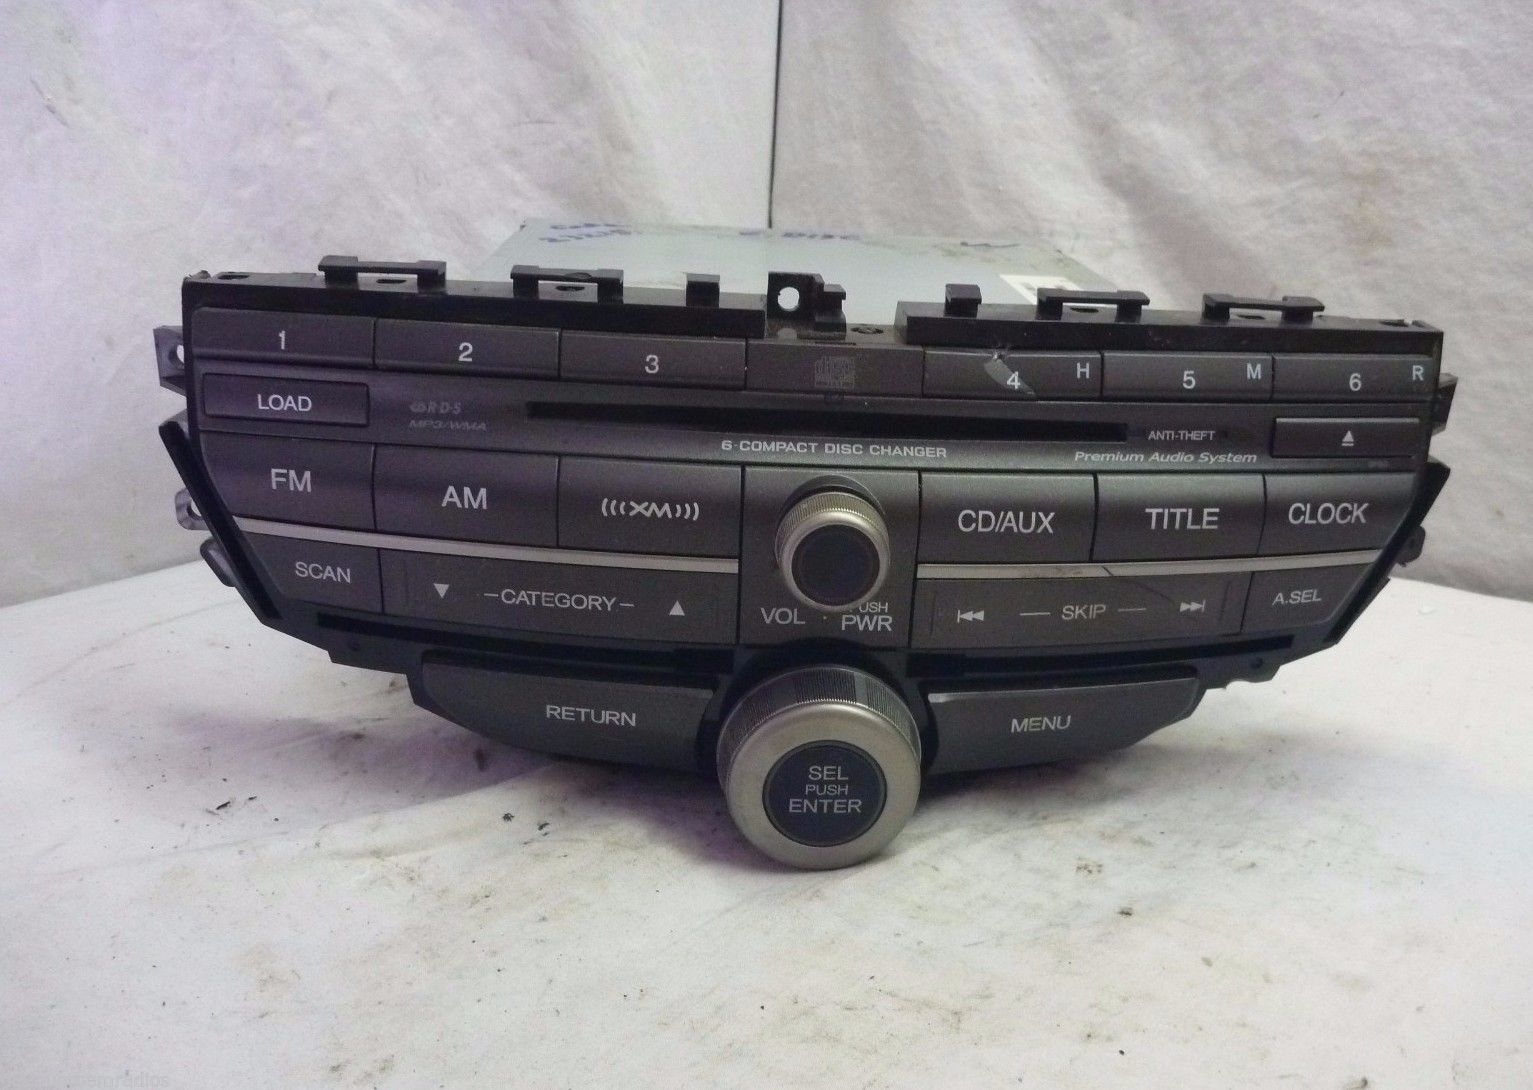 08-12 Honda Accord Premium 6 Disc Cd Player & Code 39100-TA0-L421 3PB0 S04387